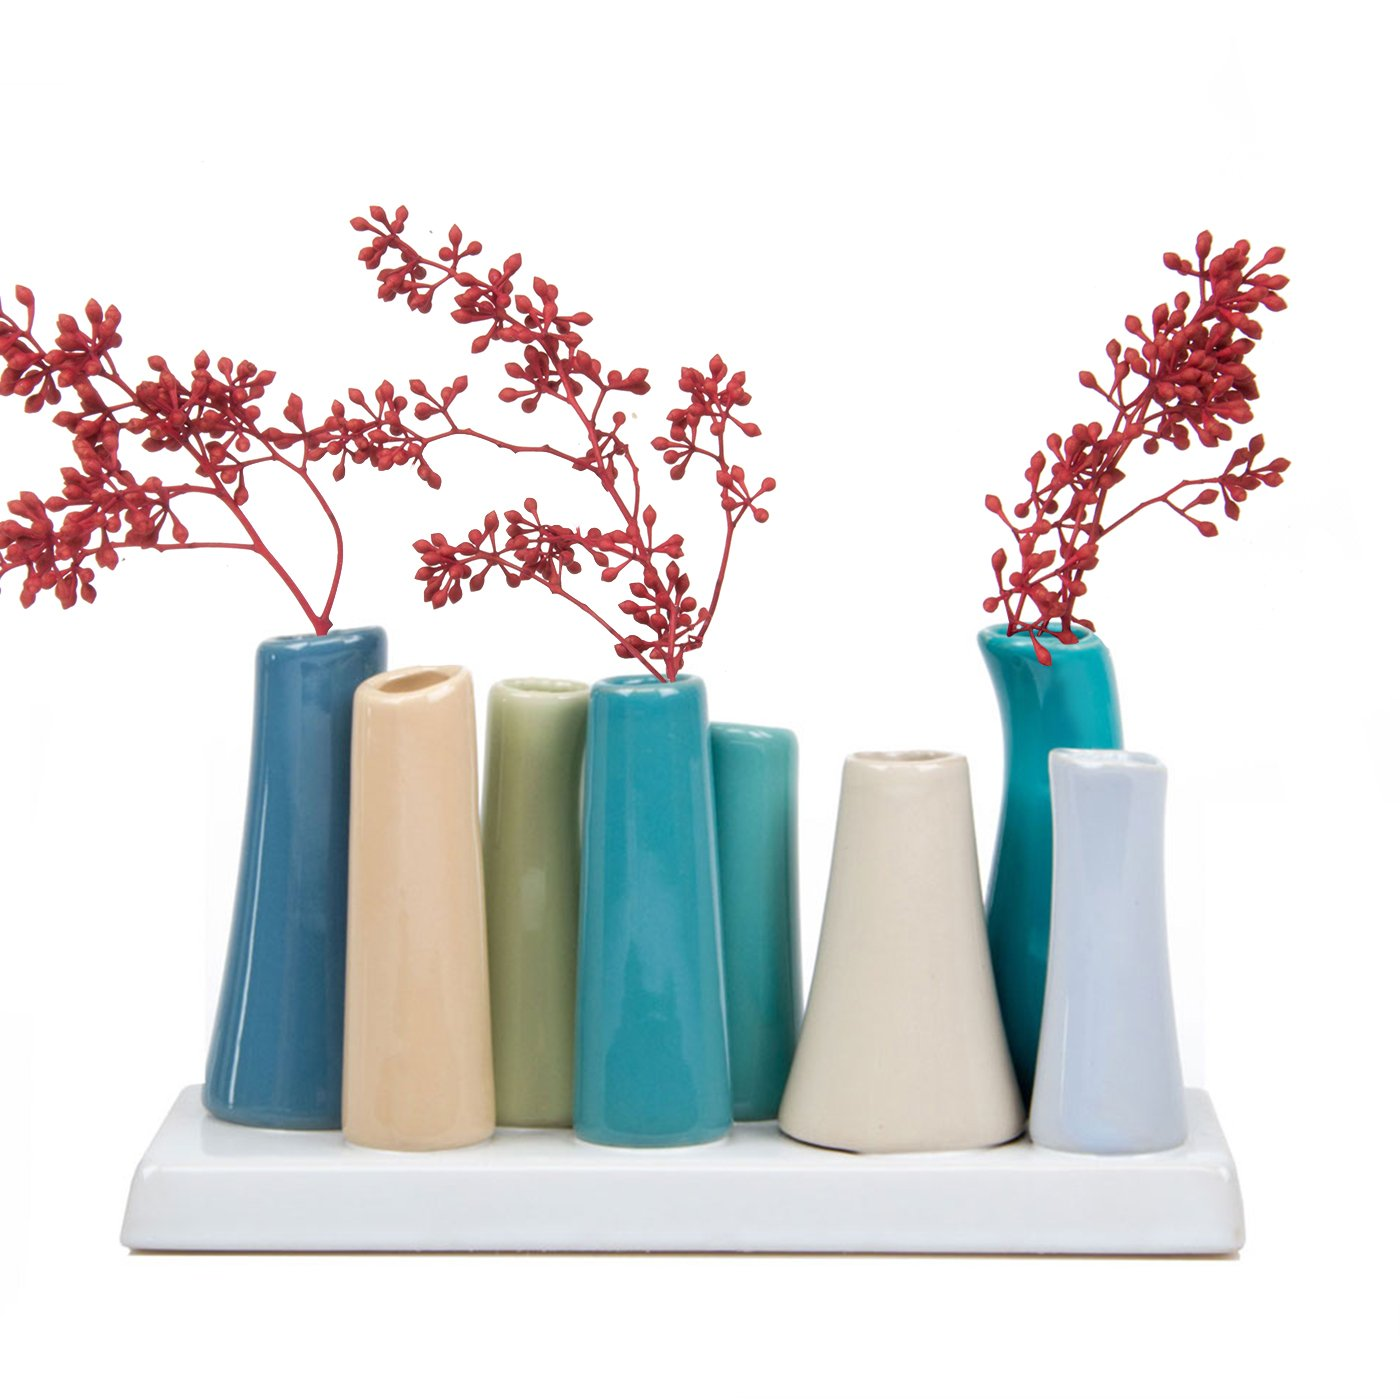 Chive Pooley 2, Unique Rectangle Ceramic Flower Vase, Small Bud Vase, Decorative Floral Vase for Home Decor, Table Top Centerpieces, Arranging Bouquets, Set of 8 Tubes Connected (Steel Blue, Green)